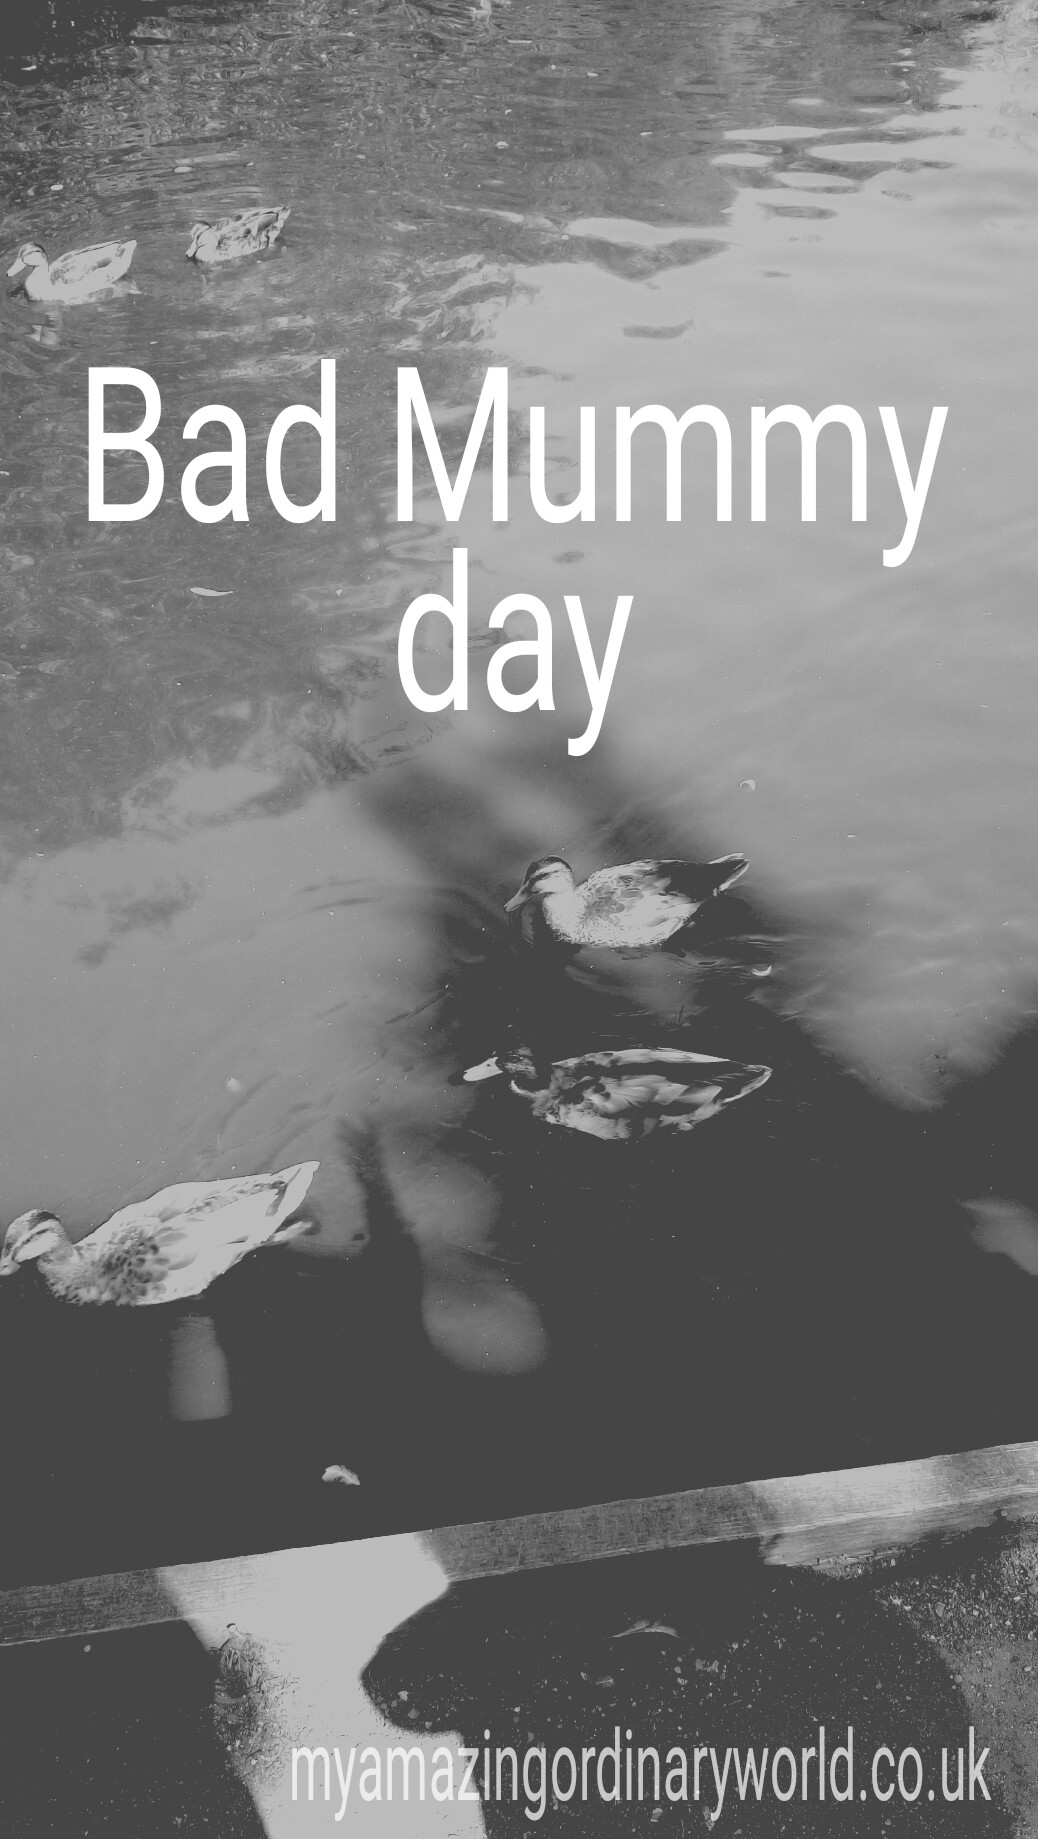 Bad Mummy day